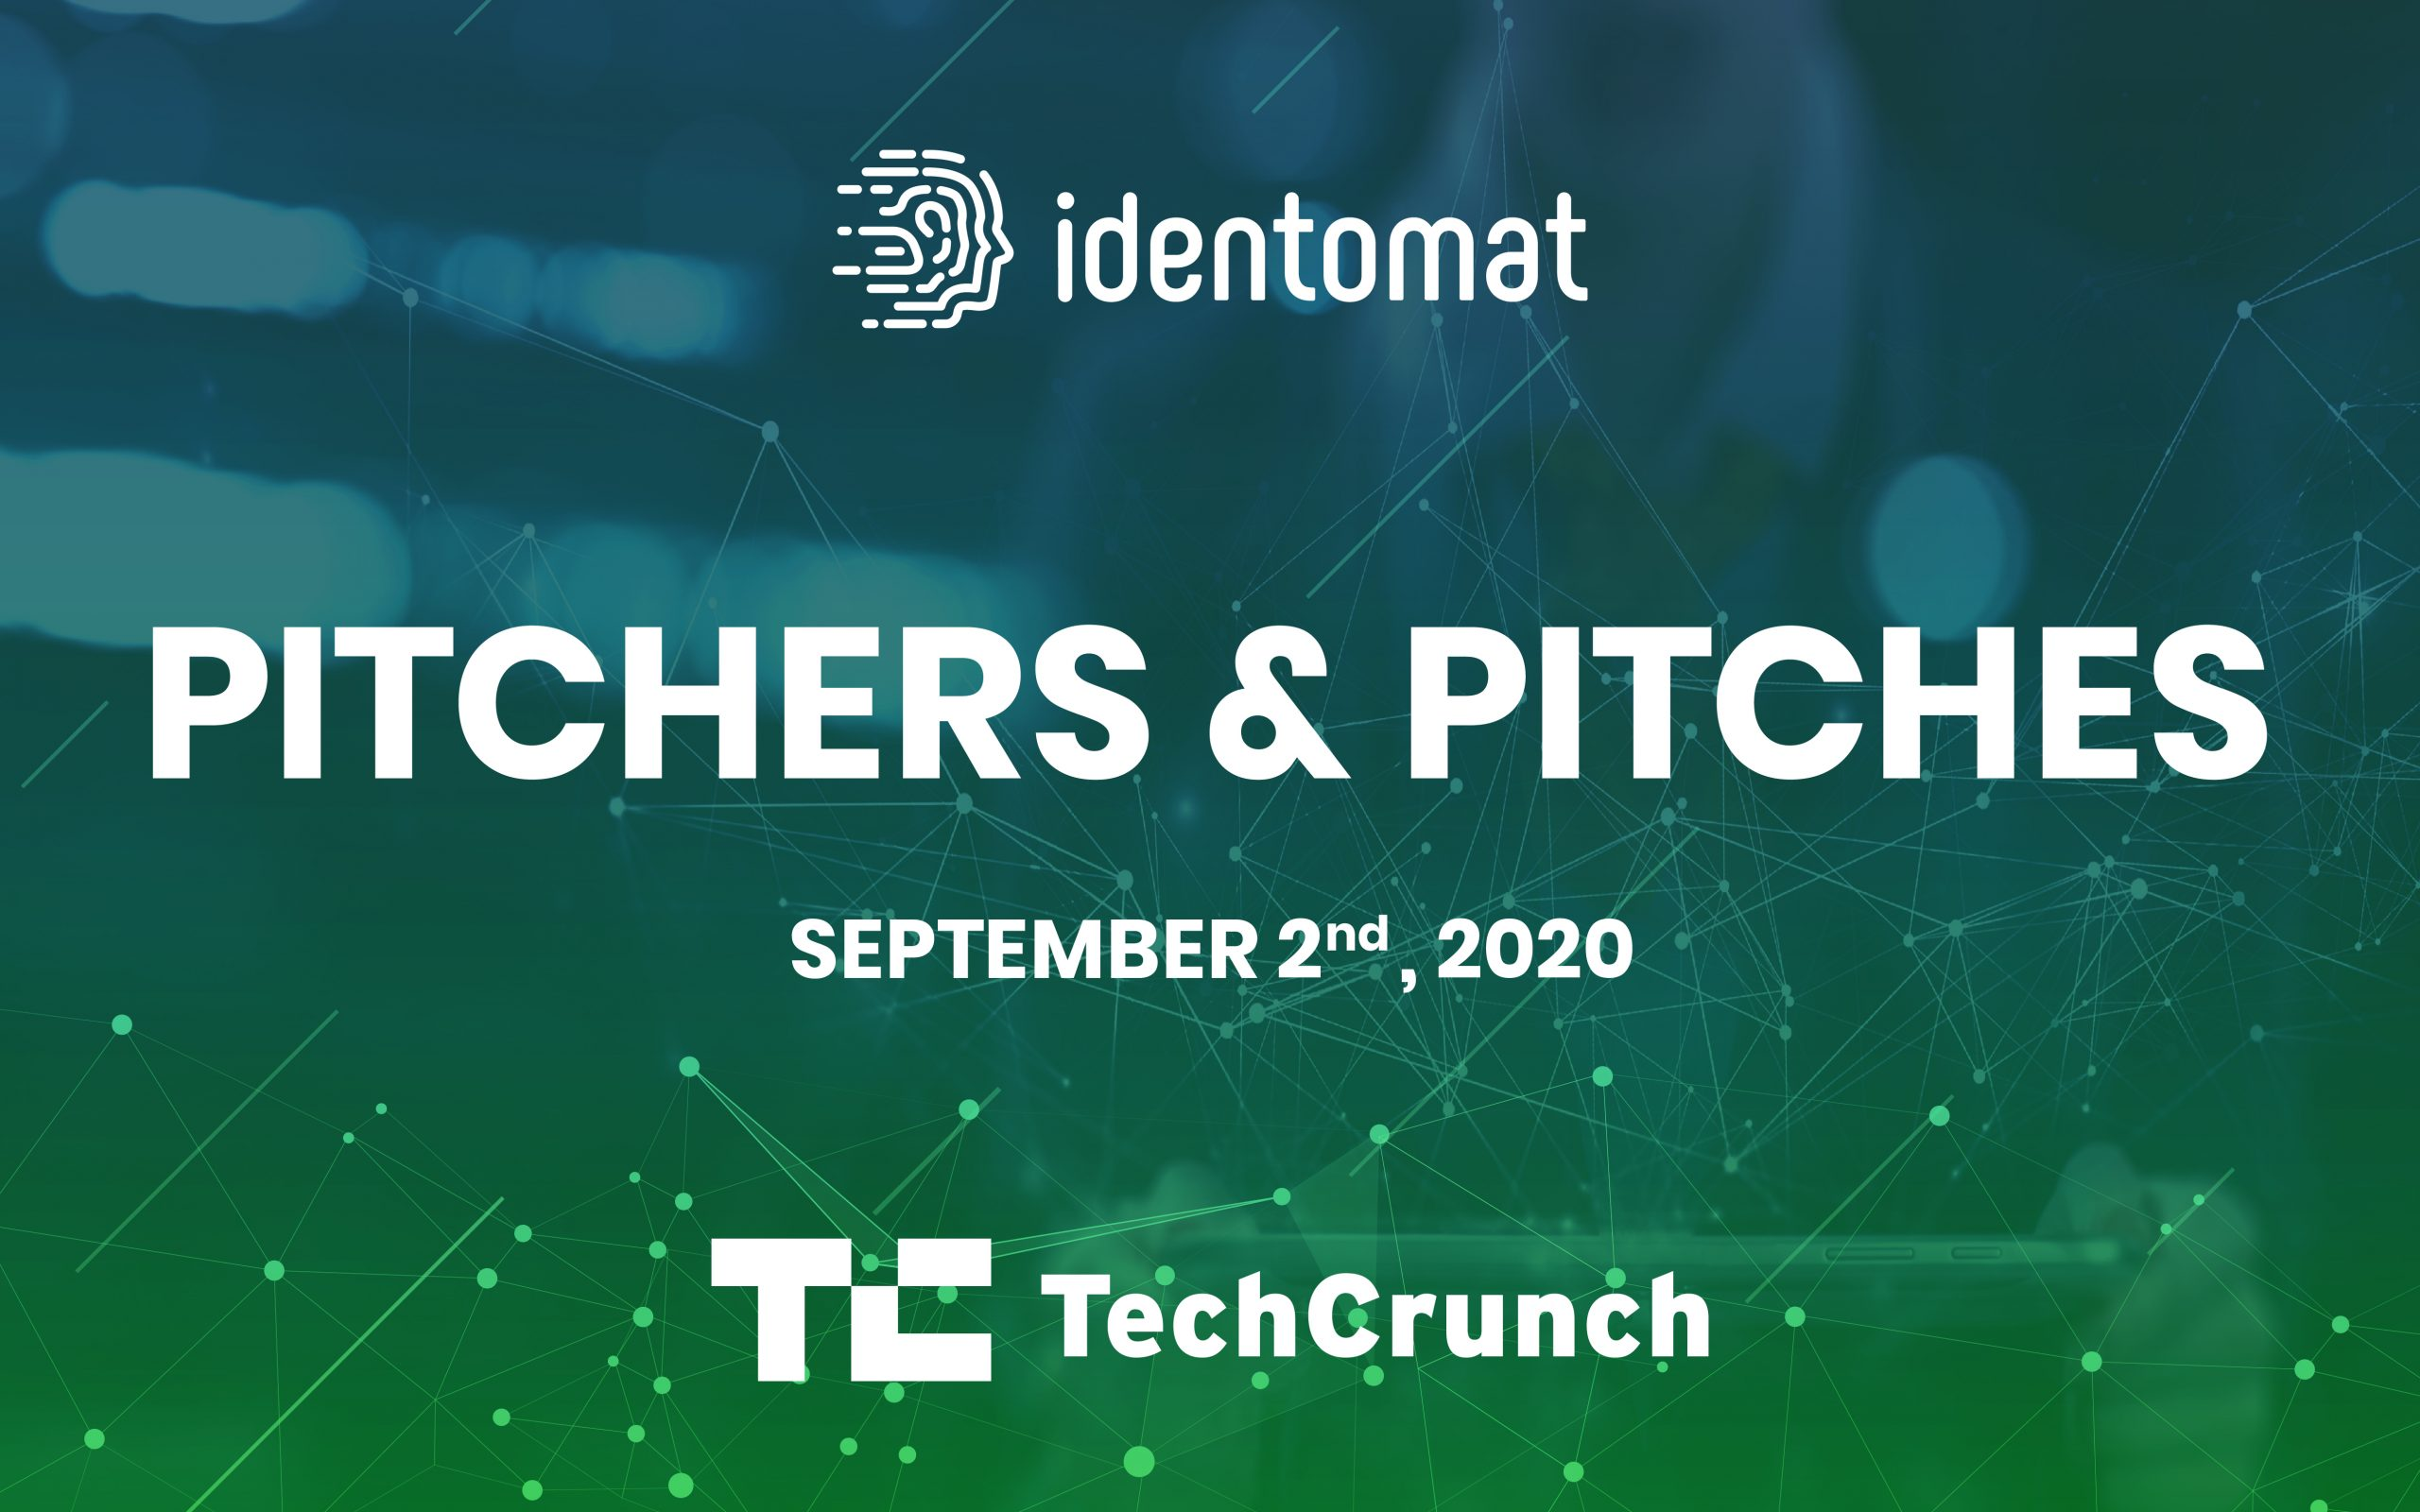 Don't Miss Identomat's Pitch At The Pre-Disrupt 2020 Masterclass